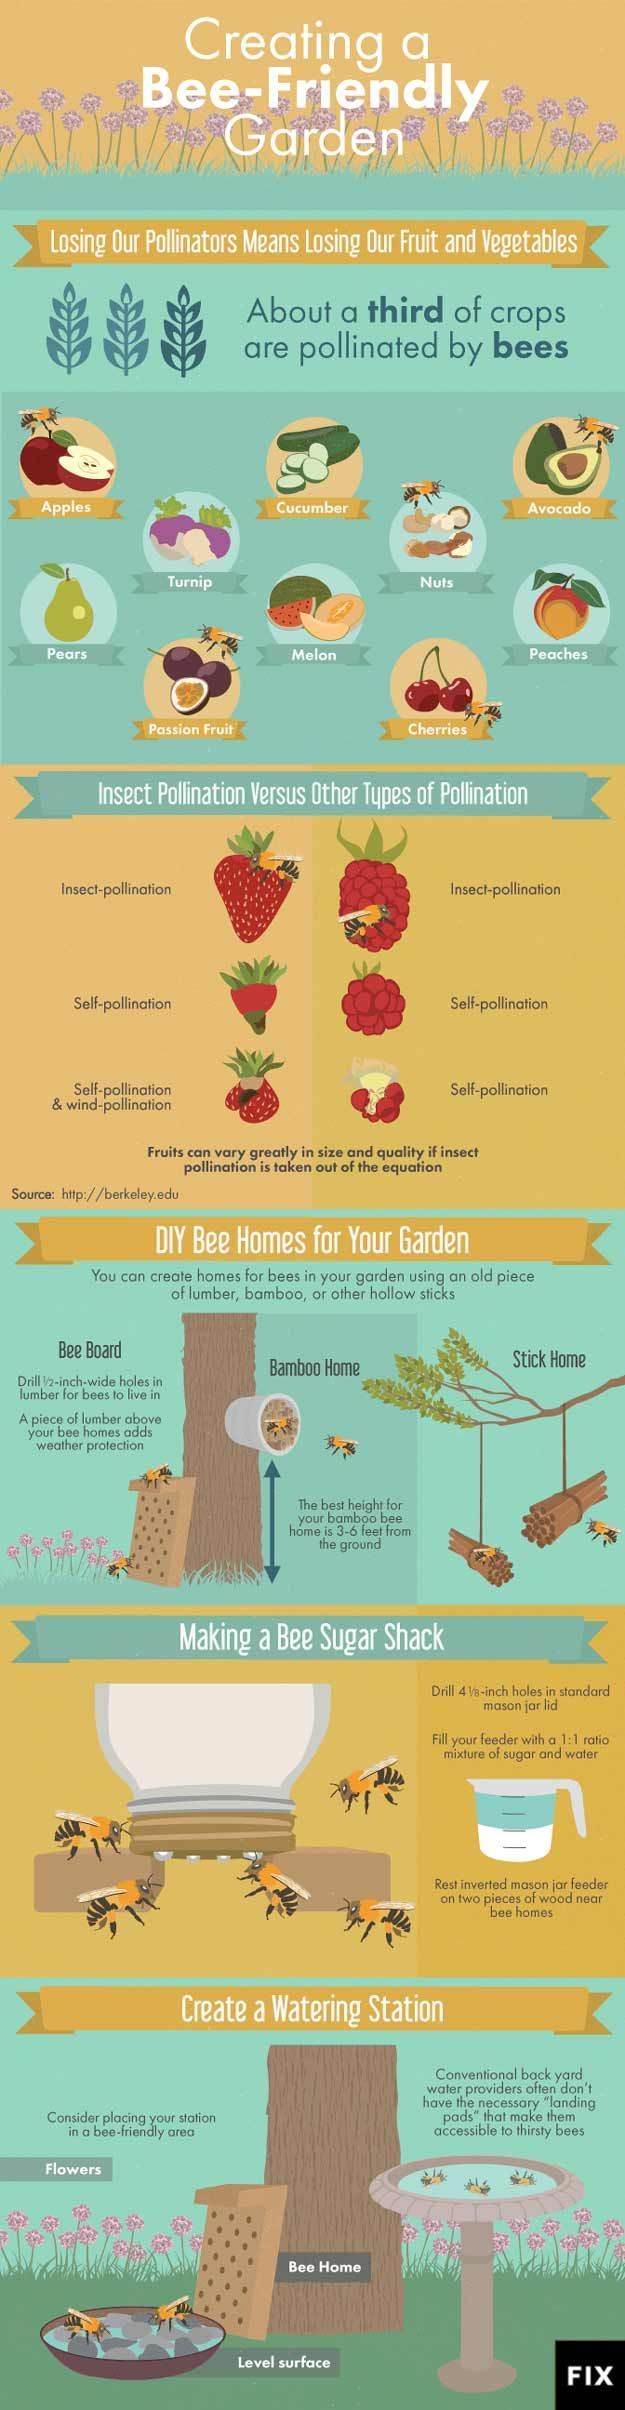 How to Create A Bee Friendly Garden